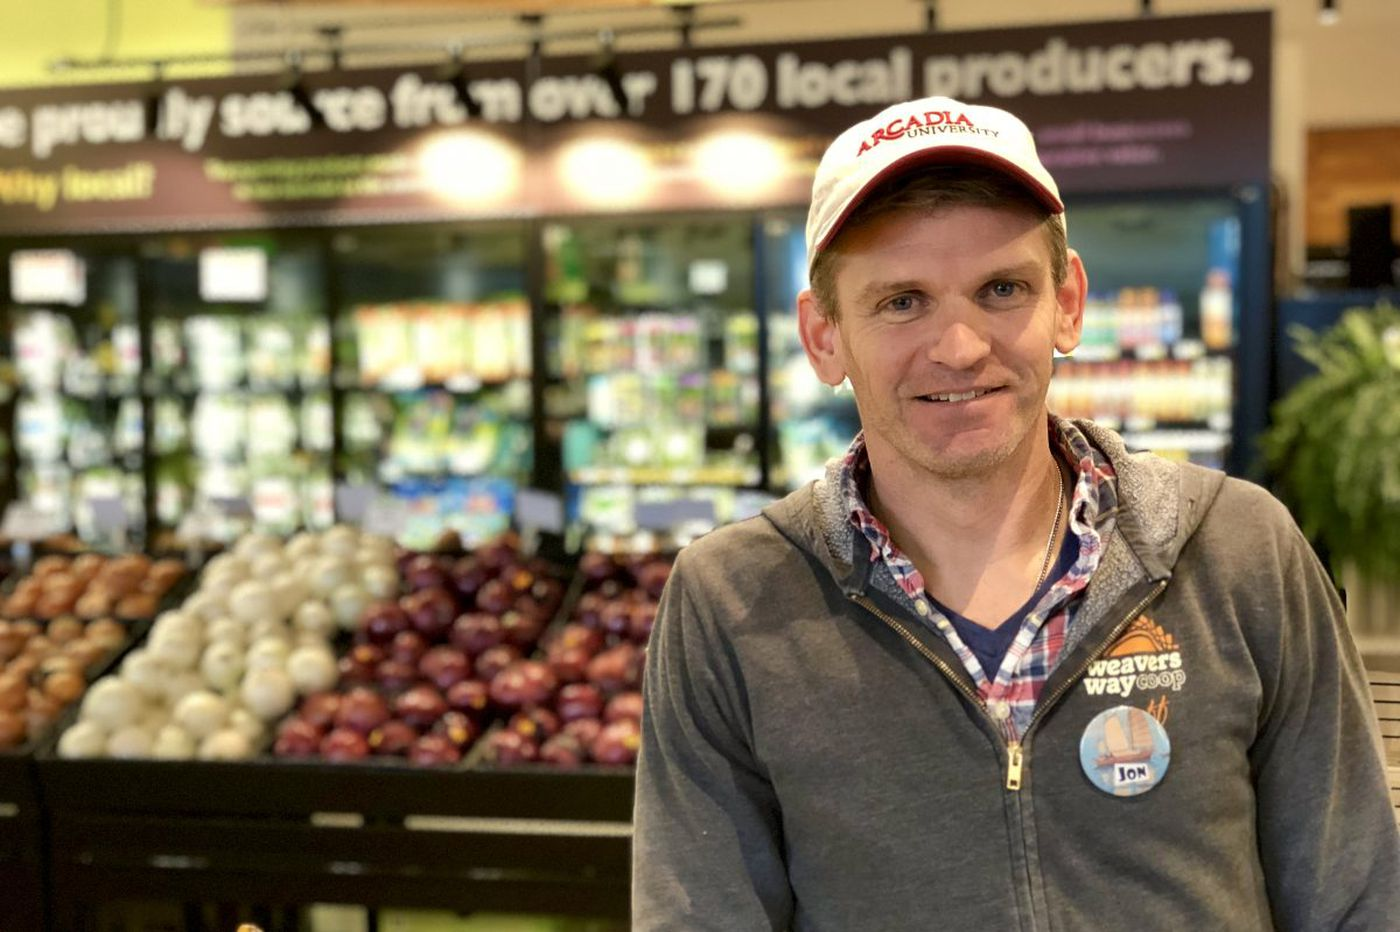 How Weavers Way Co-op thrives in this Amazon age for grocery stores